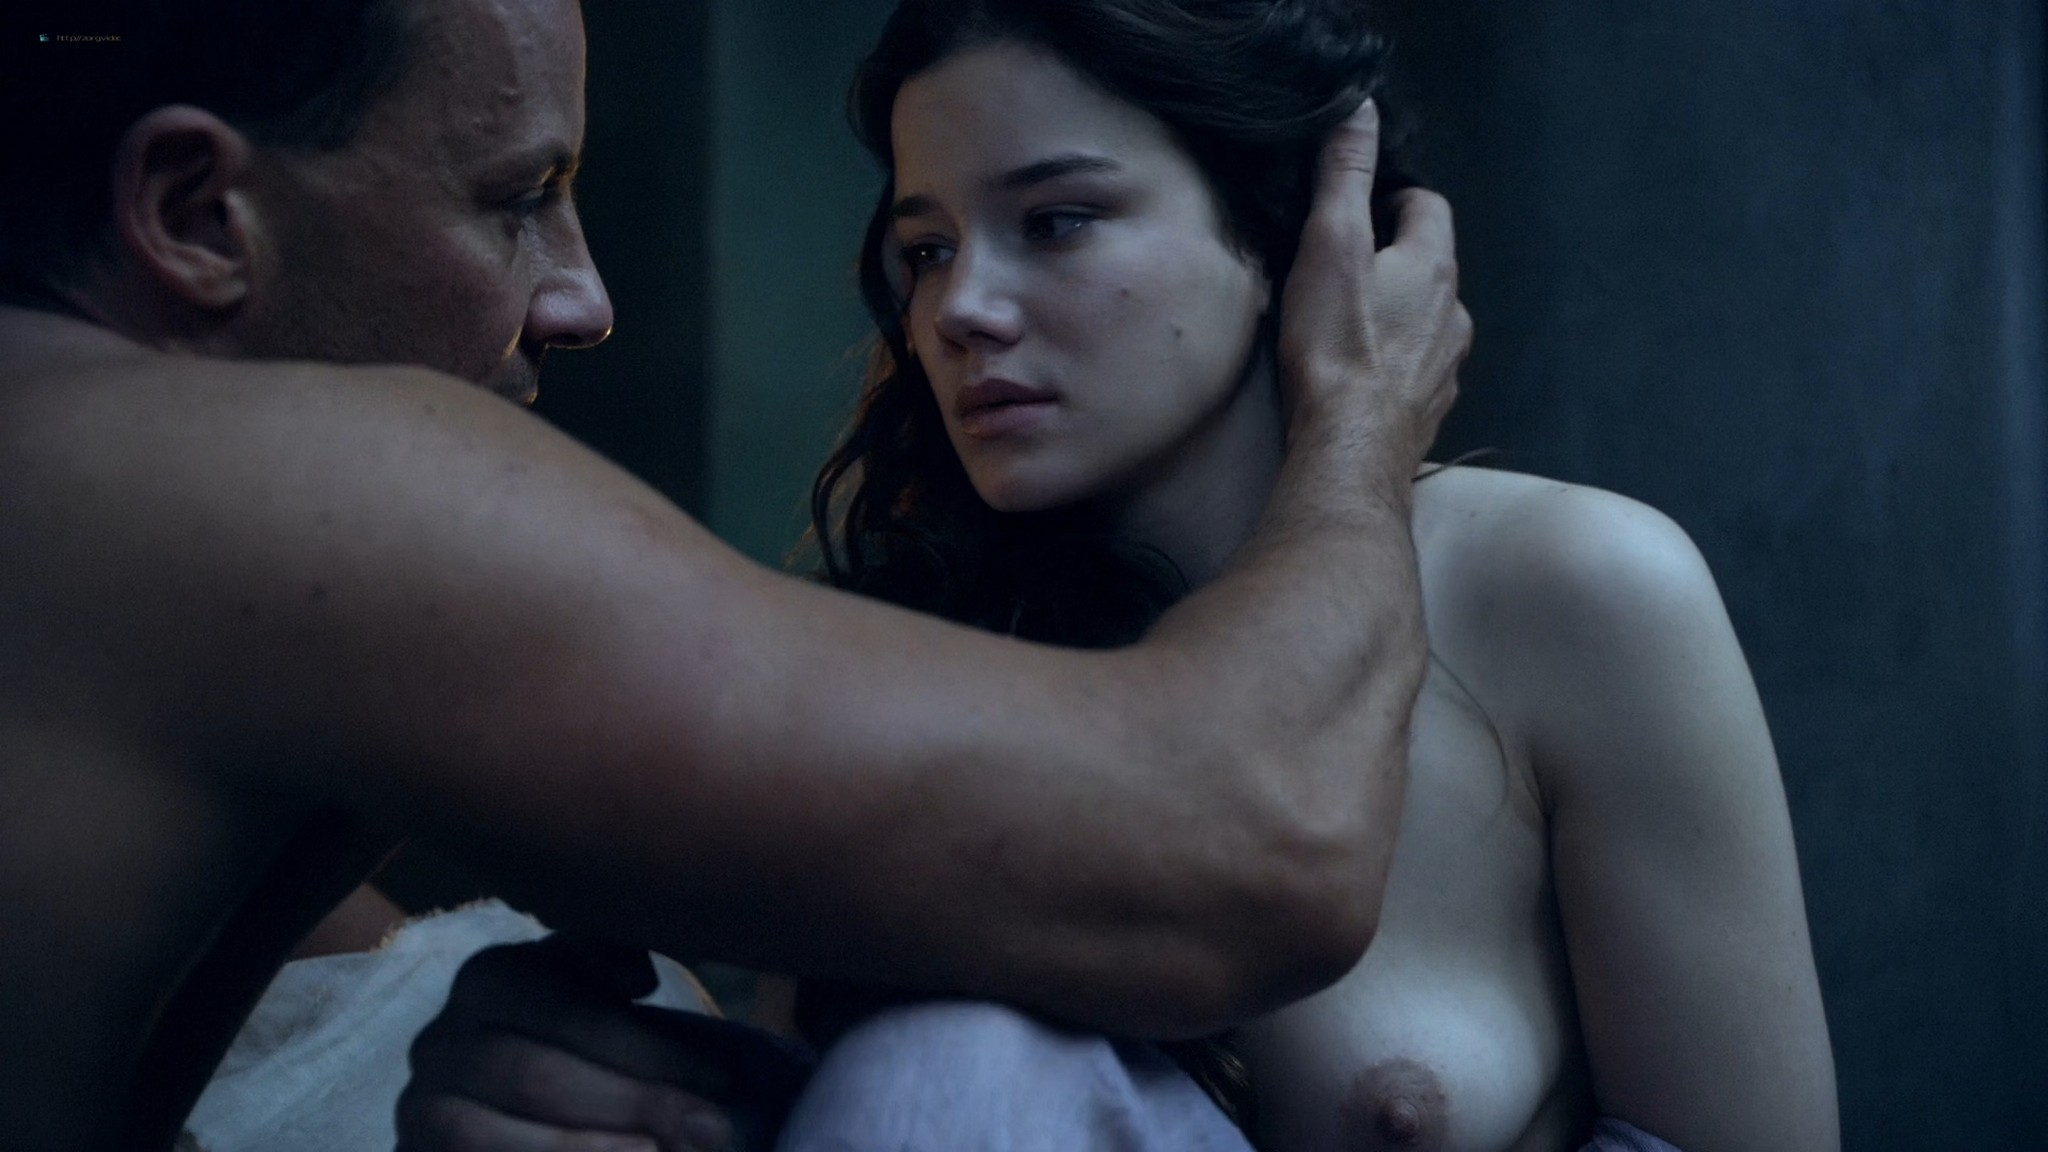 Hanna Mangan Lawrence nude sex Cynthia Addai Robinson and others nude Spartacus vengeance 2012 s2e8 9 HD 1080p BluRay 010